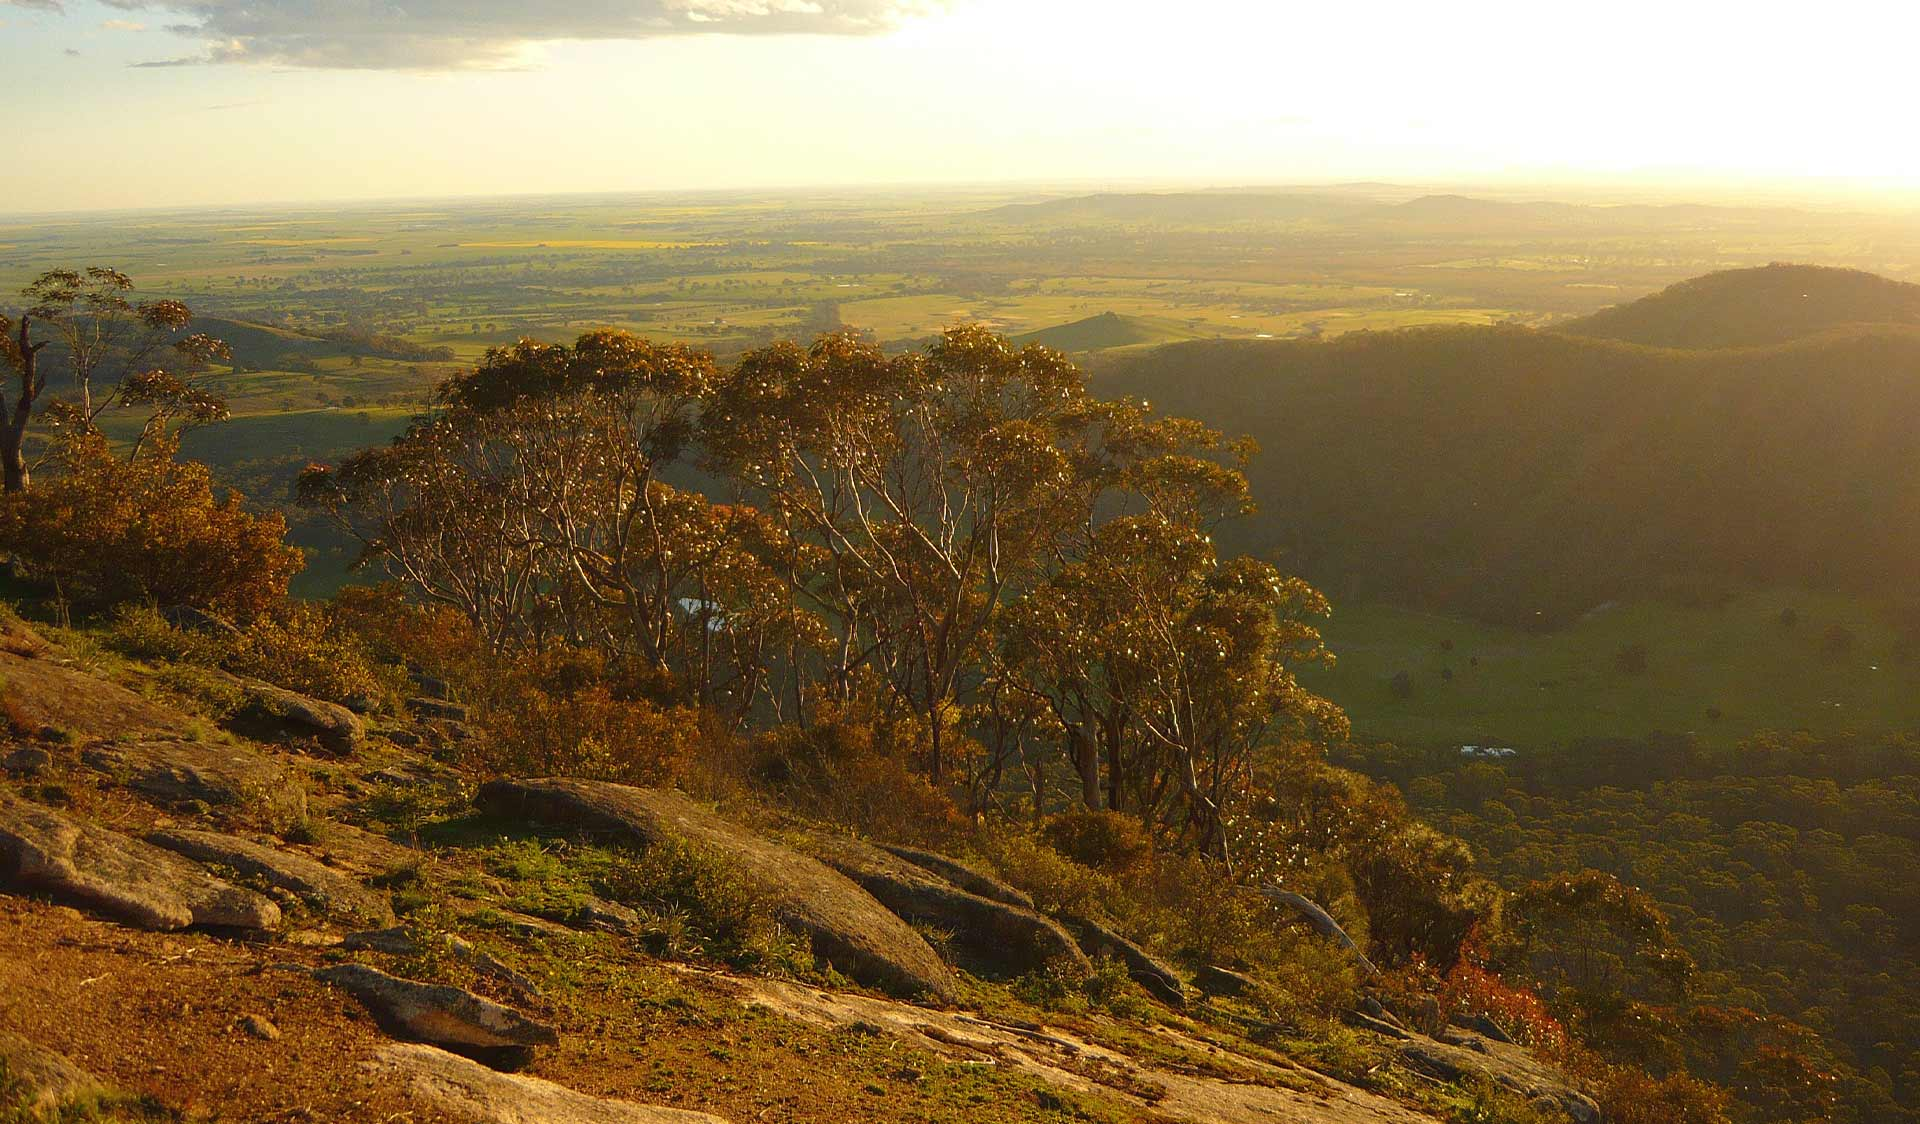 The view from Cave Hill at Mt Buangor State Park at dusk